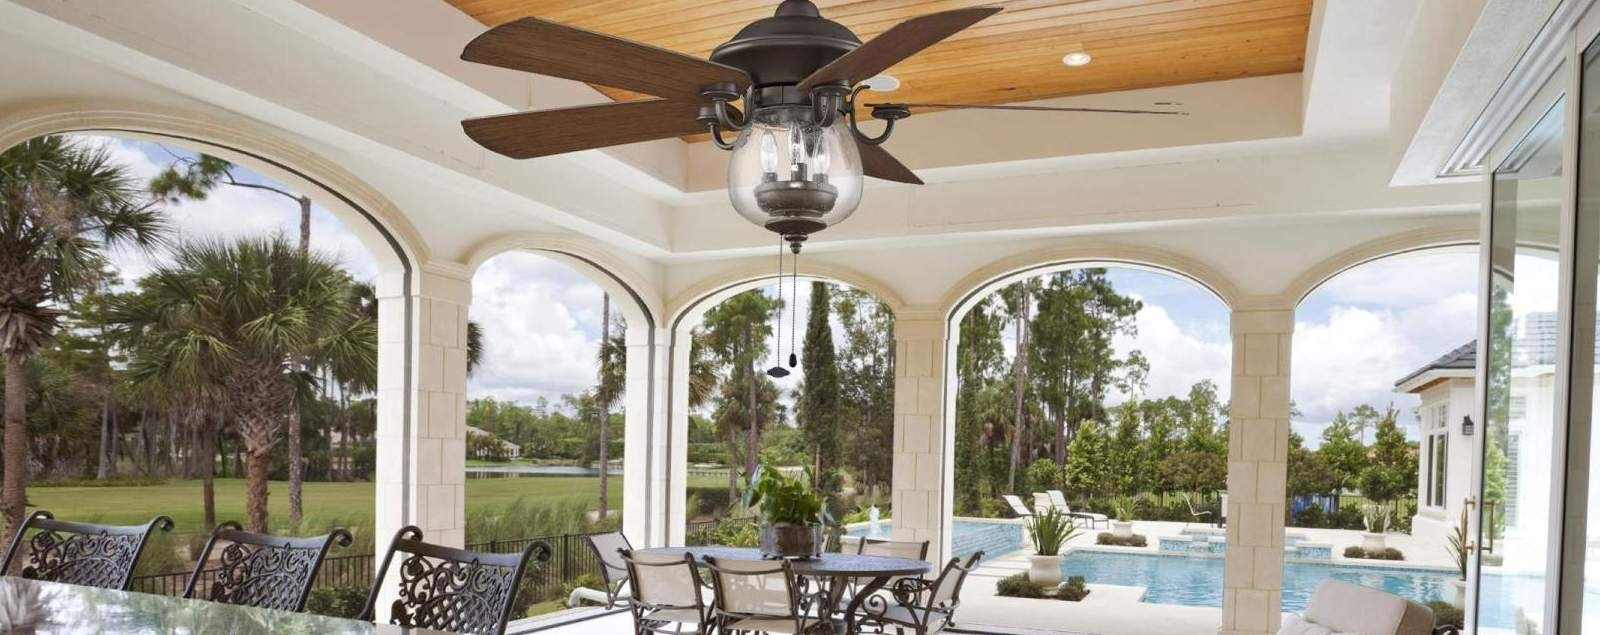 Tropical Design Outdoor Ceiling Fans Pertaining To Fashionable Outdoor Ceiling Fans – Shop Wet, Dry, And Damp Rated Outdoor Fans (View 18 of 20)